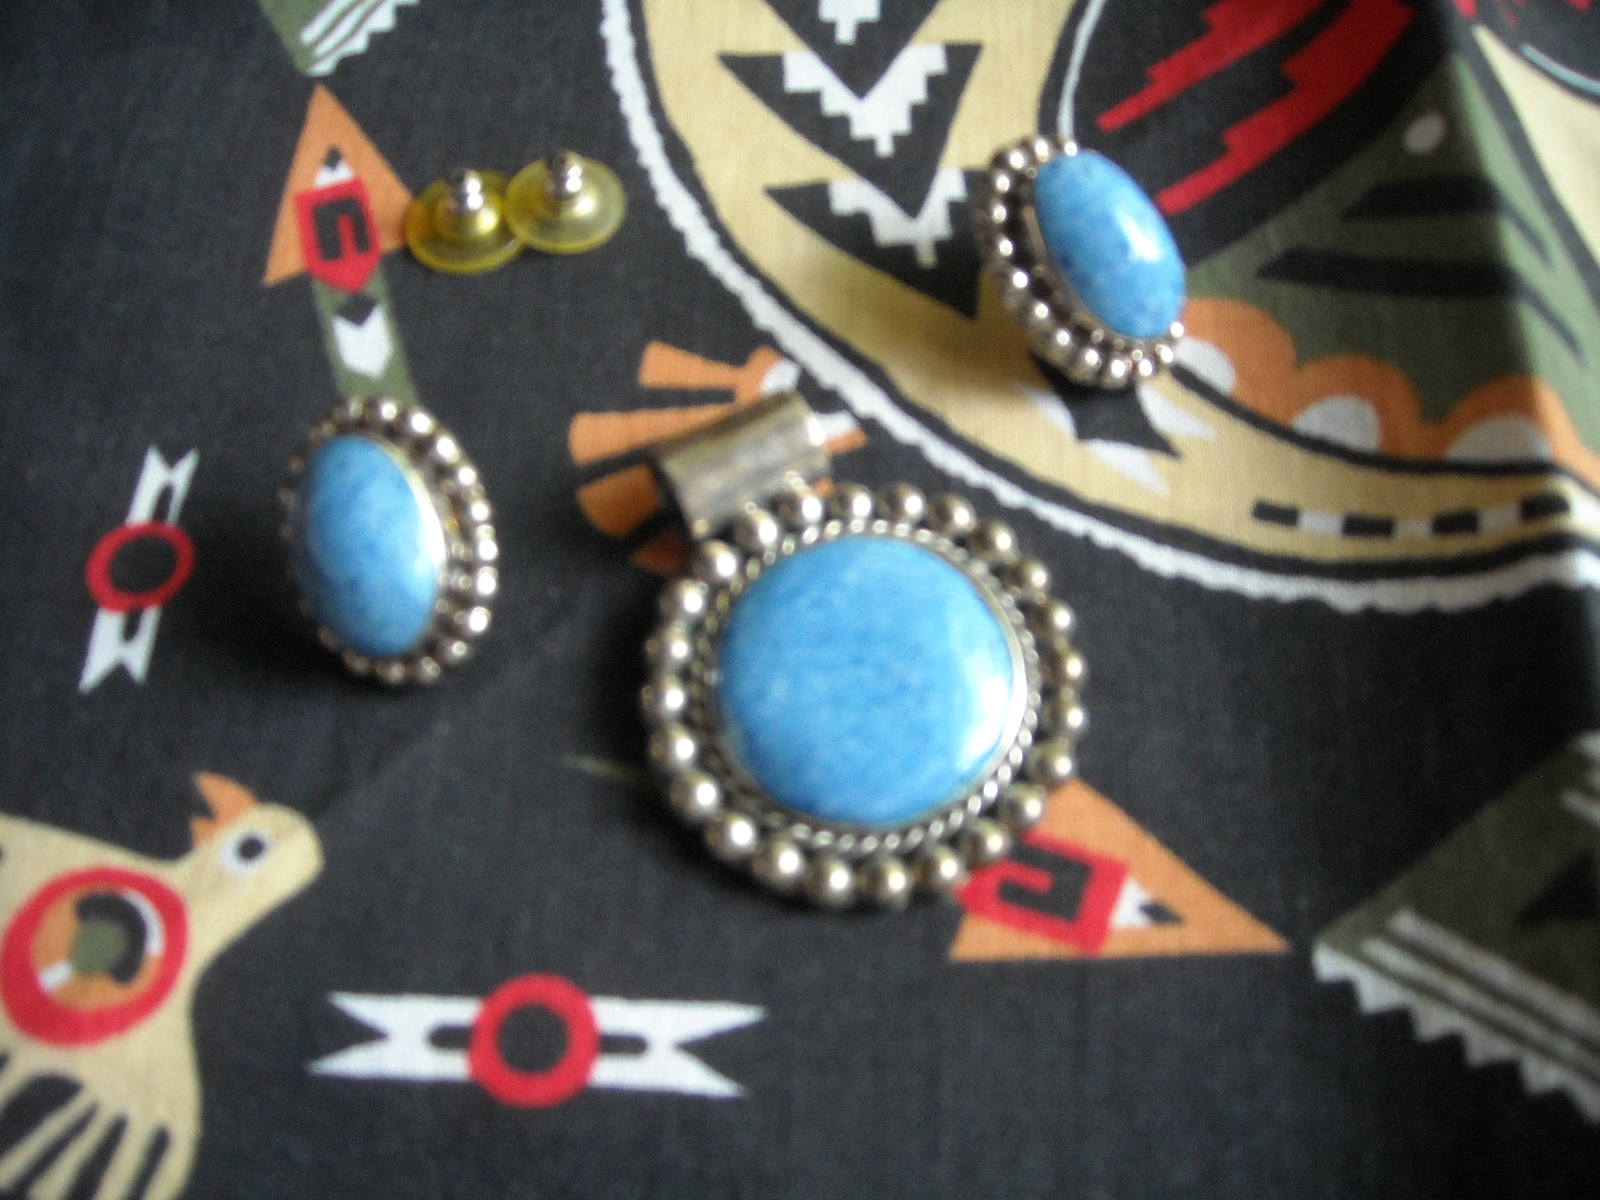 Handcrafted Sterling Silver Pendant & Post Earrings With Blue Stone Mexico TJ 86